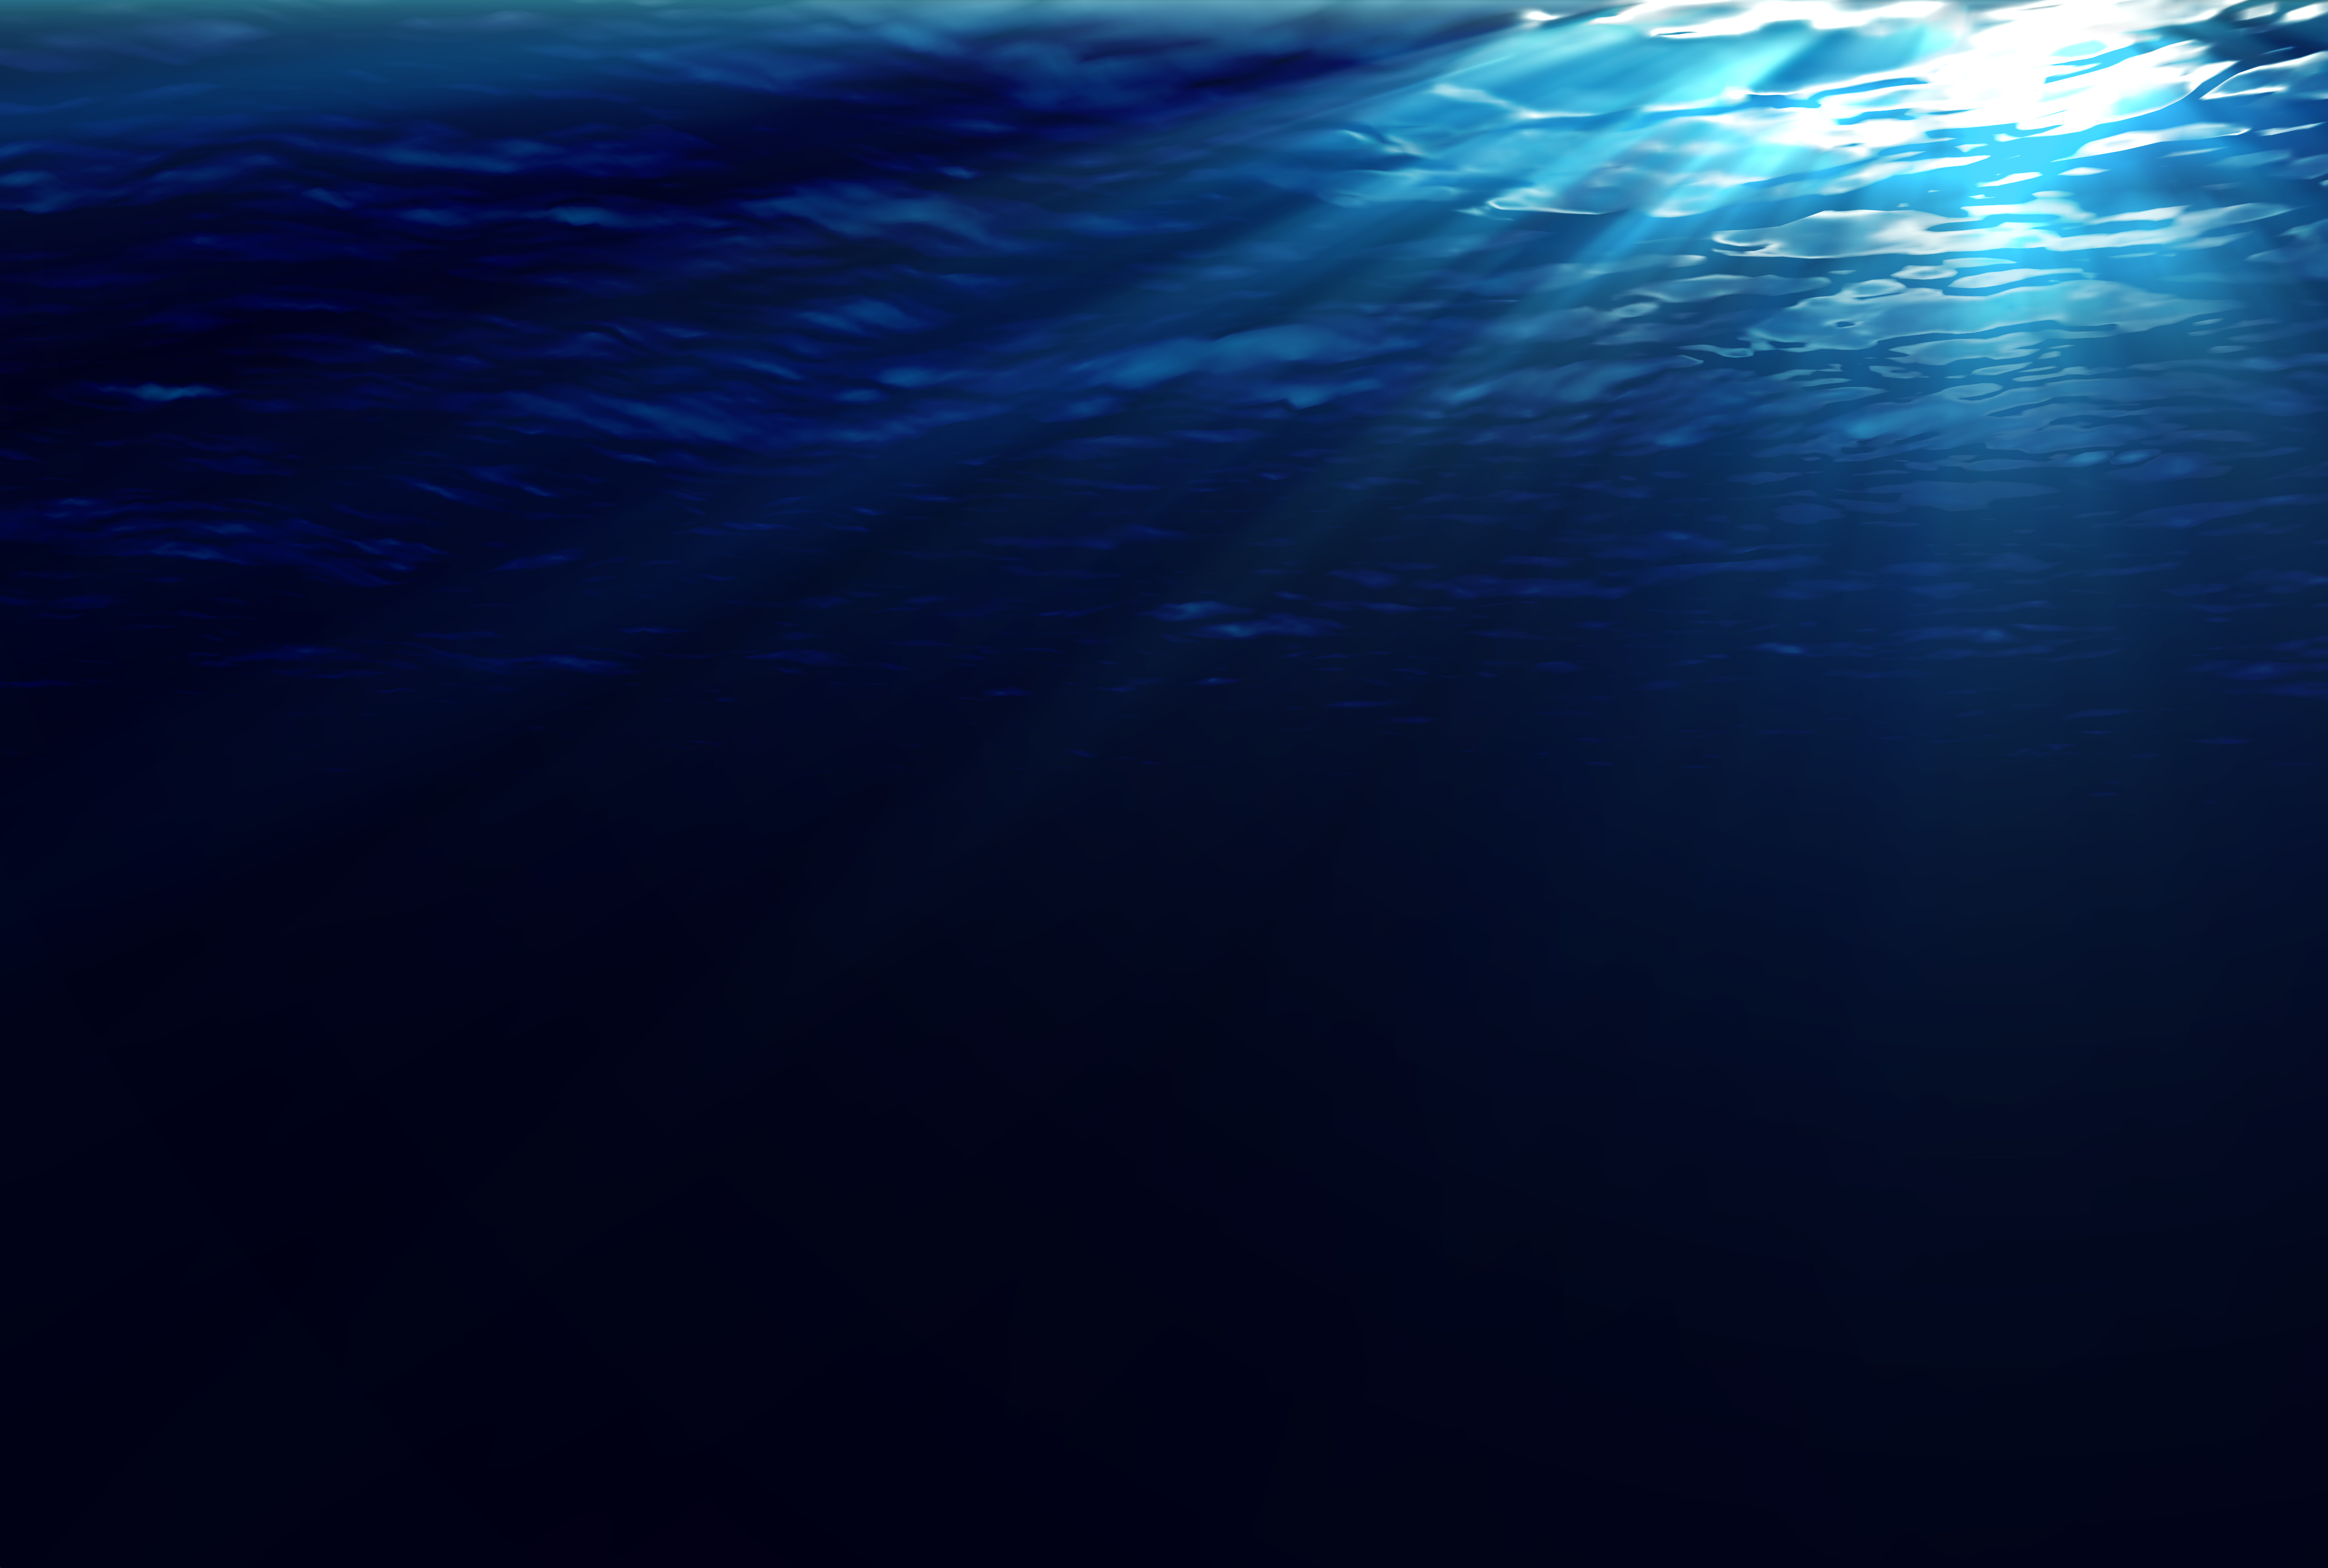 Amazing Underwater Pictures & Backgrounds